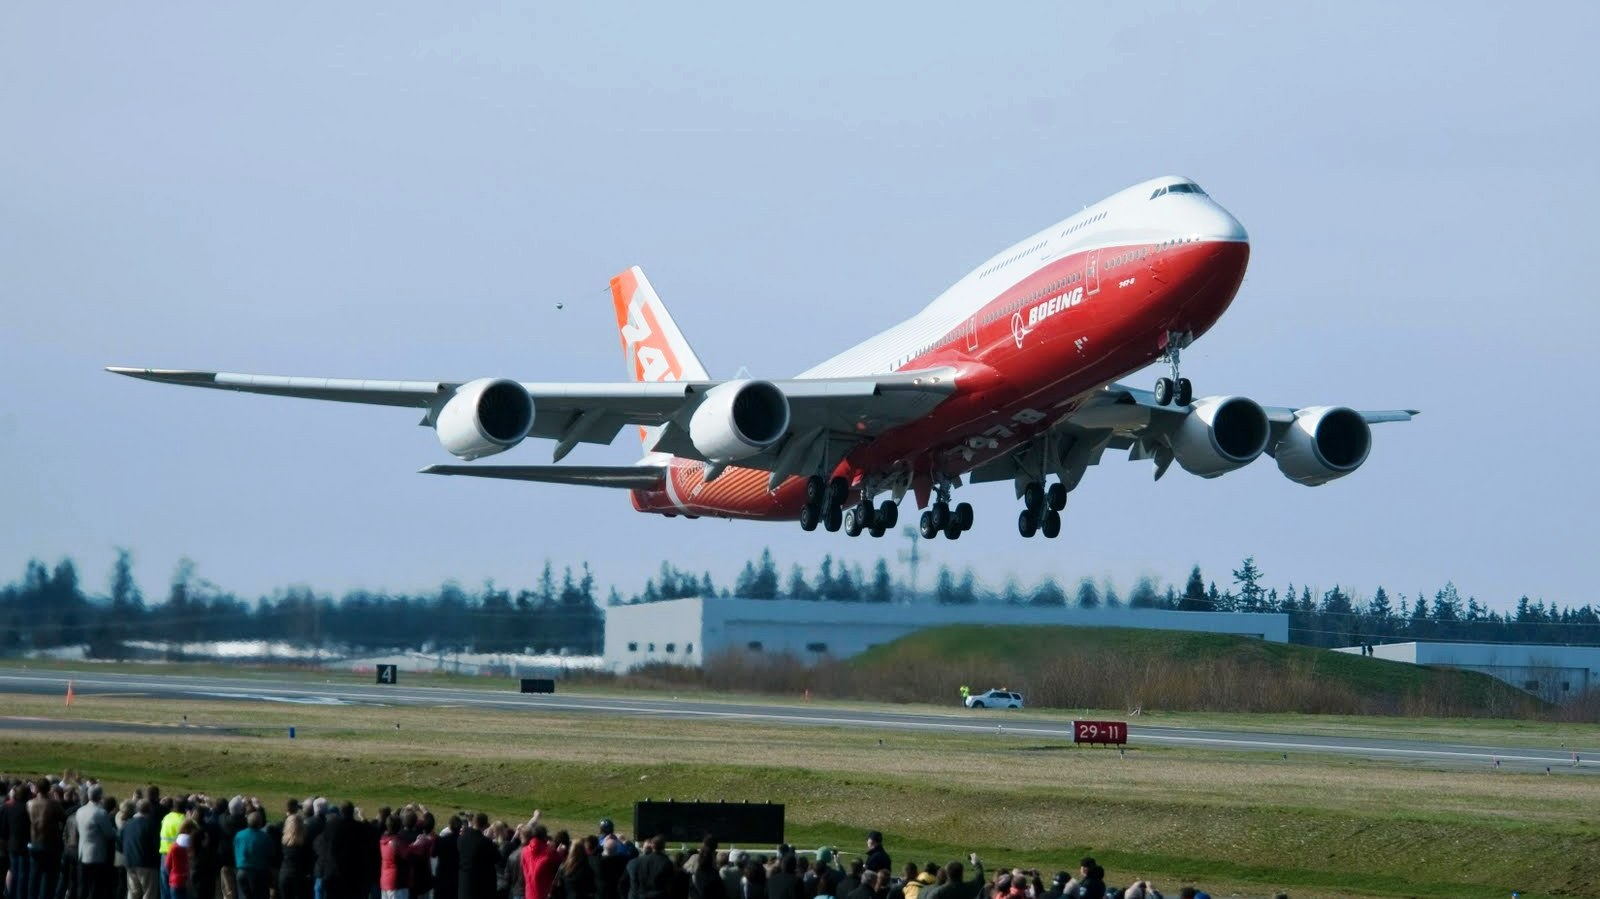 external image b747_8_jumbo_jet_takeoff_13298_aircraft-wallpaper.jpg